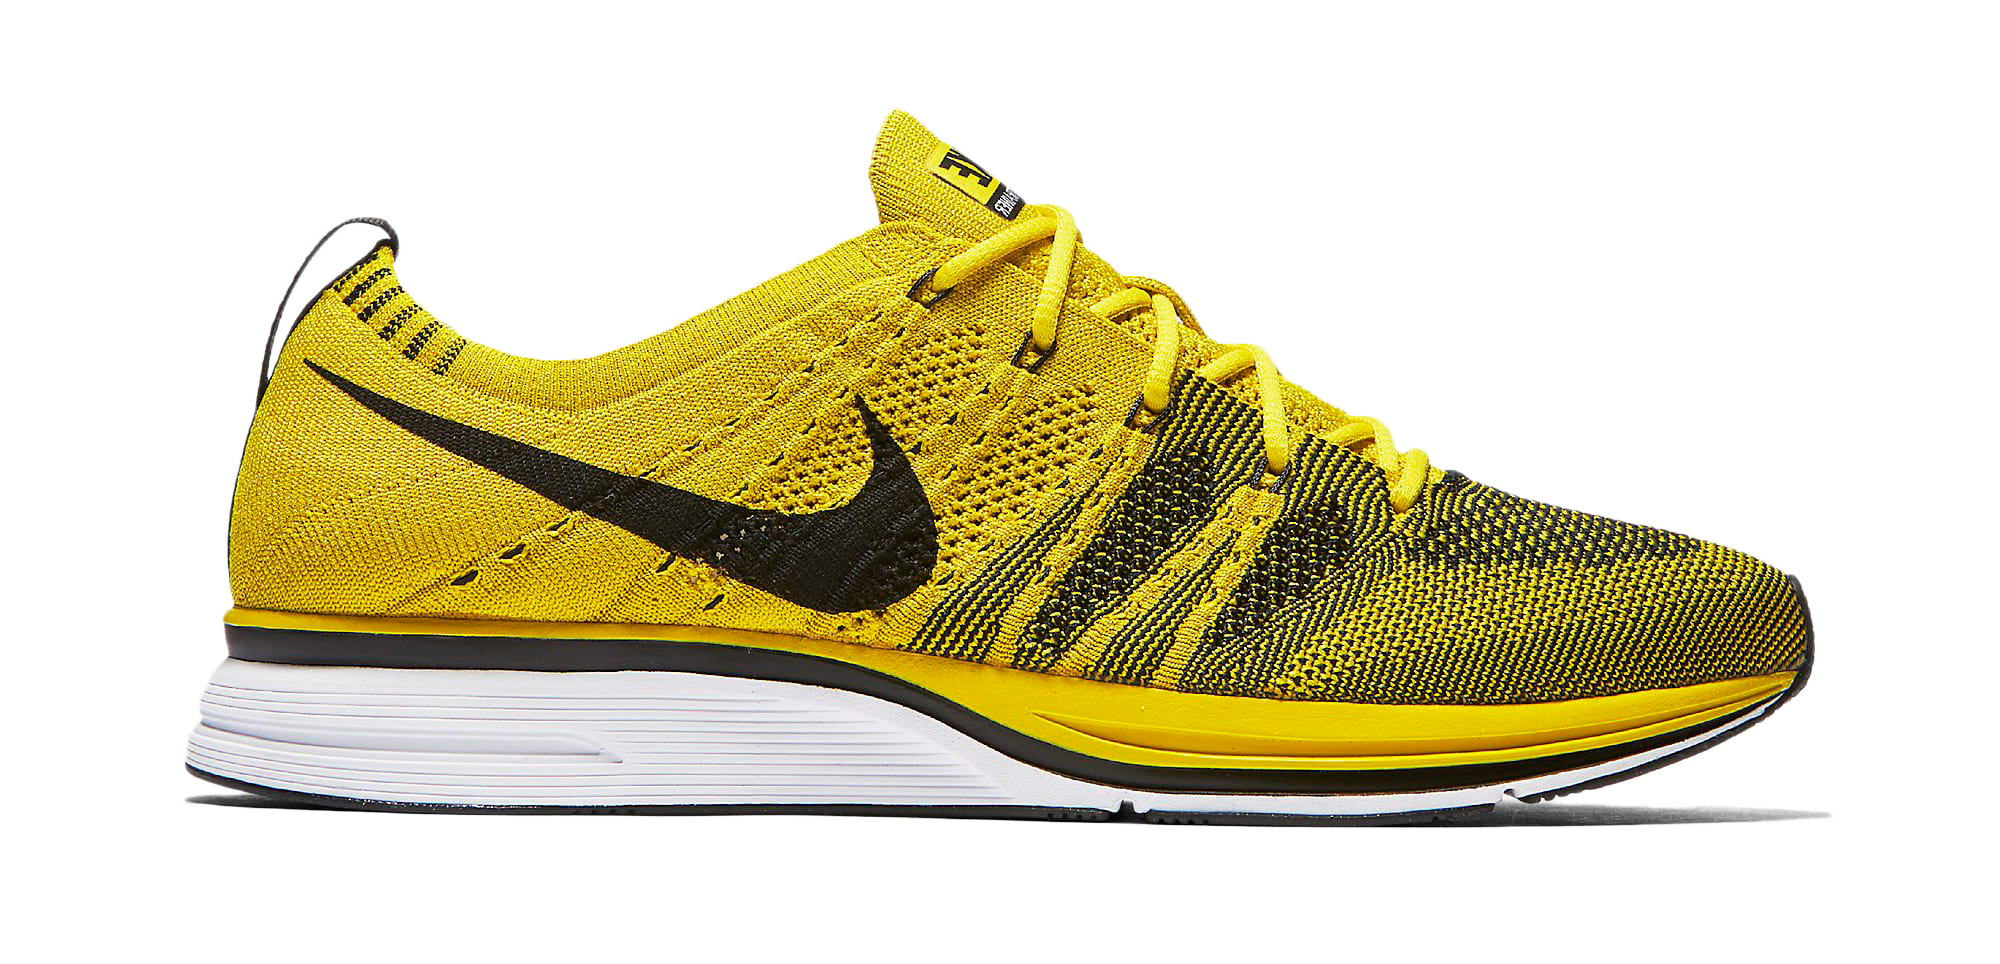 nike flyknit trainer price